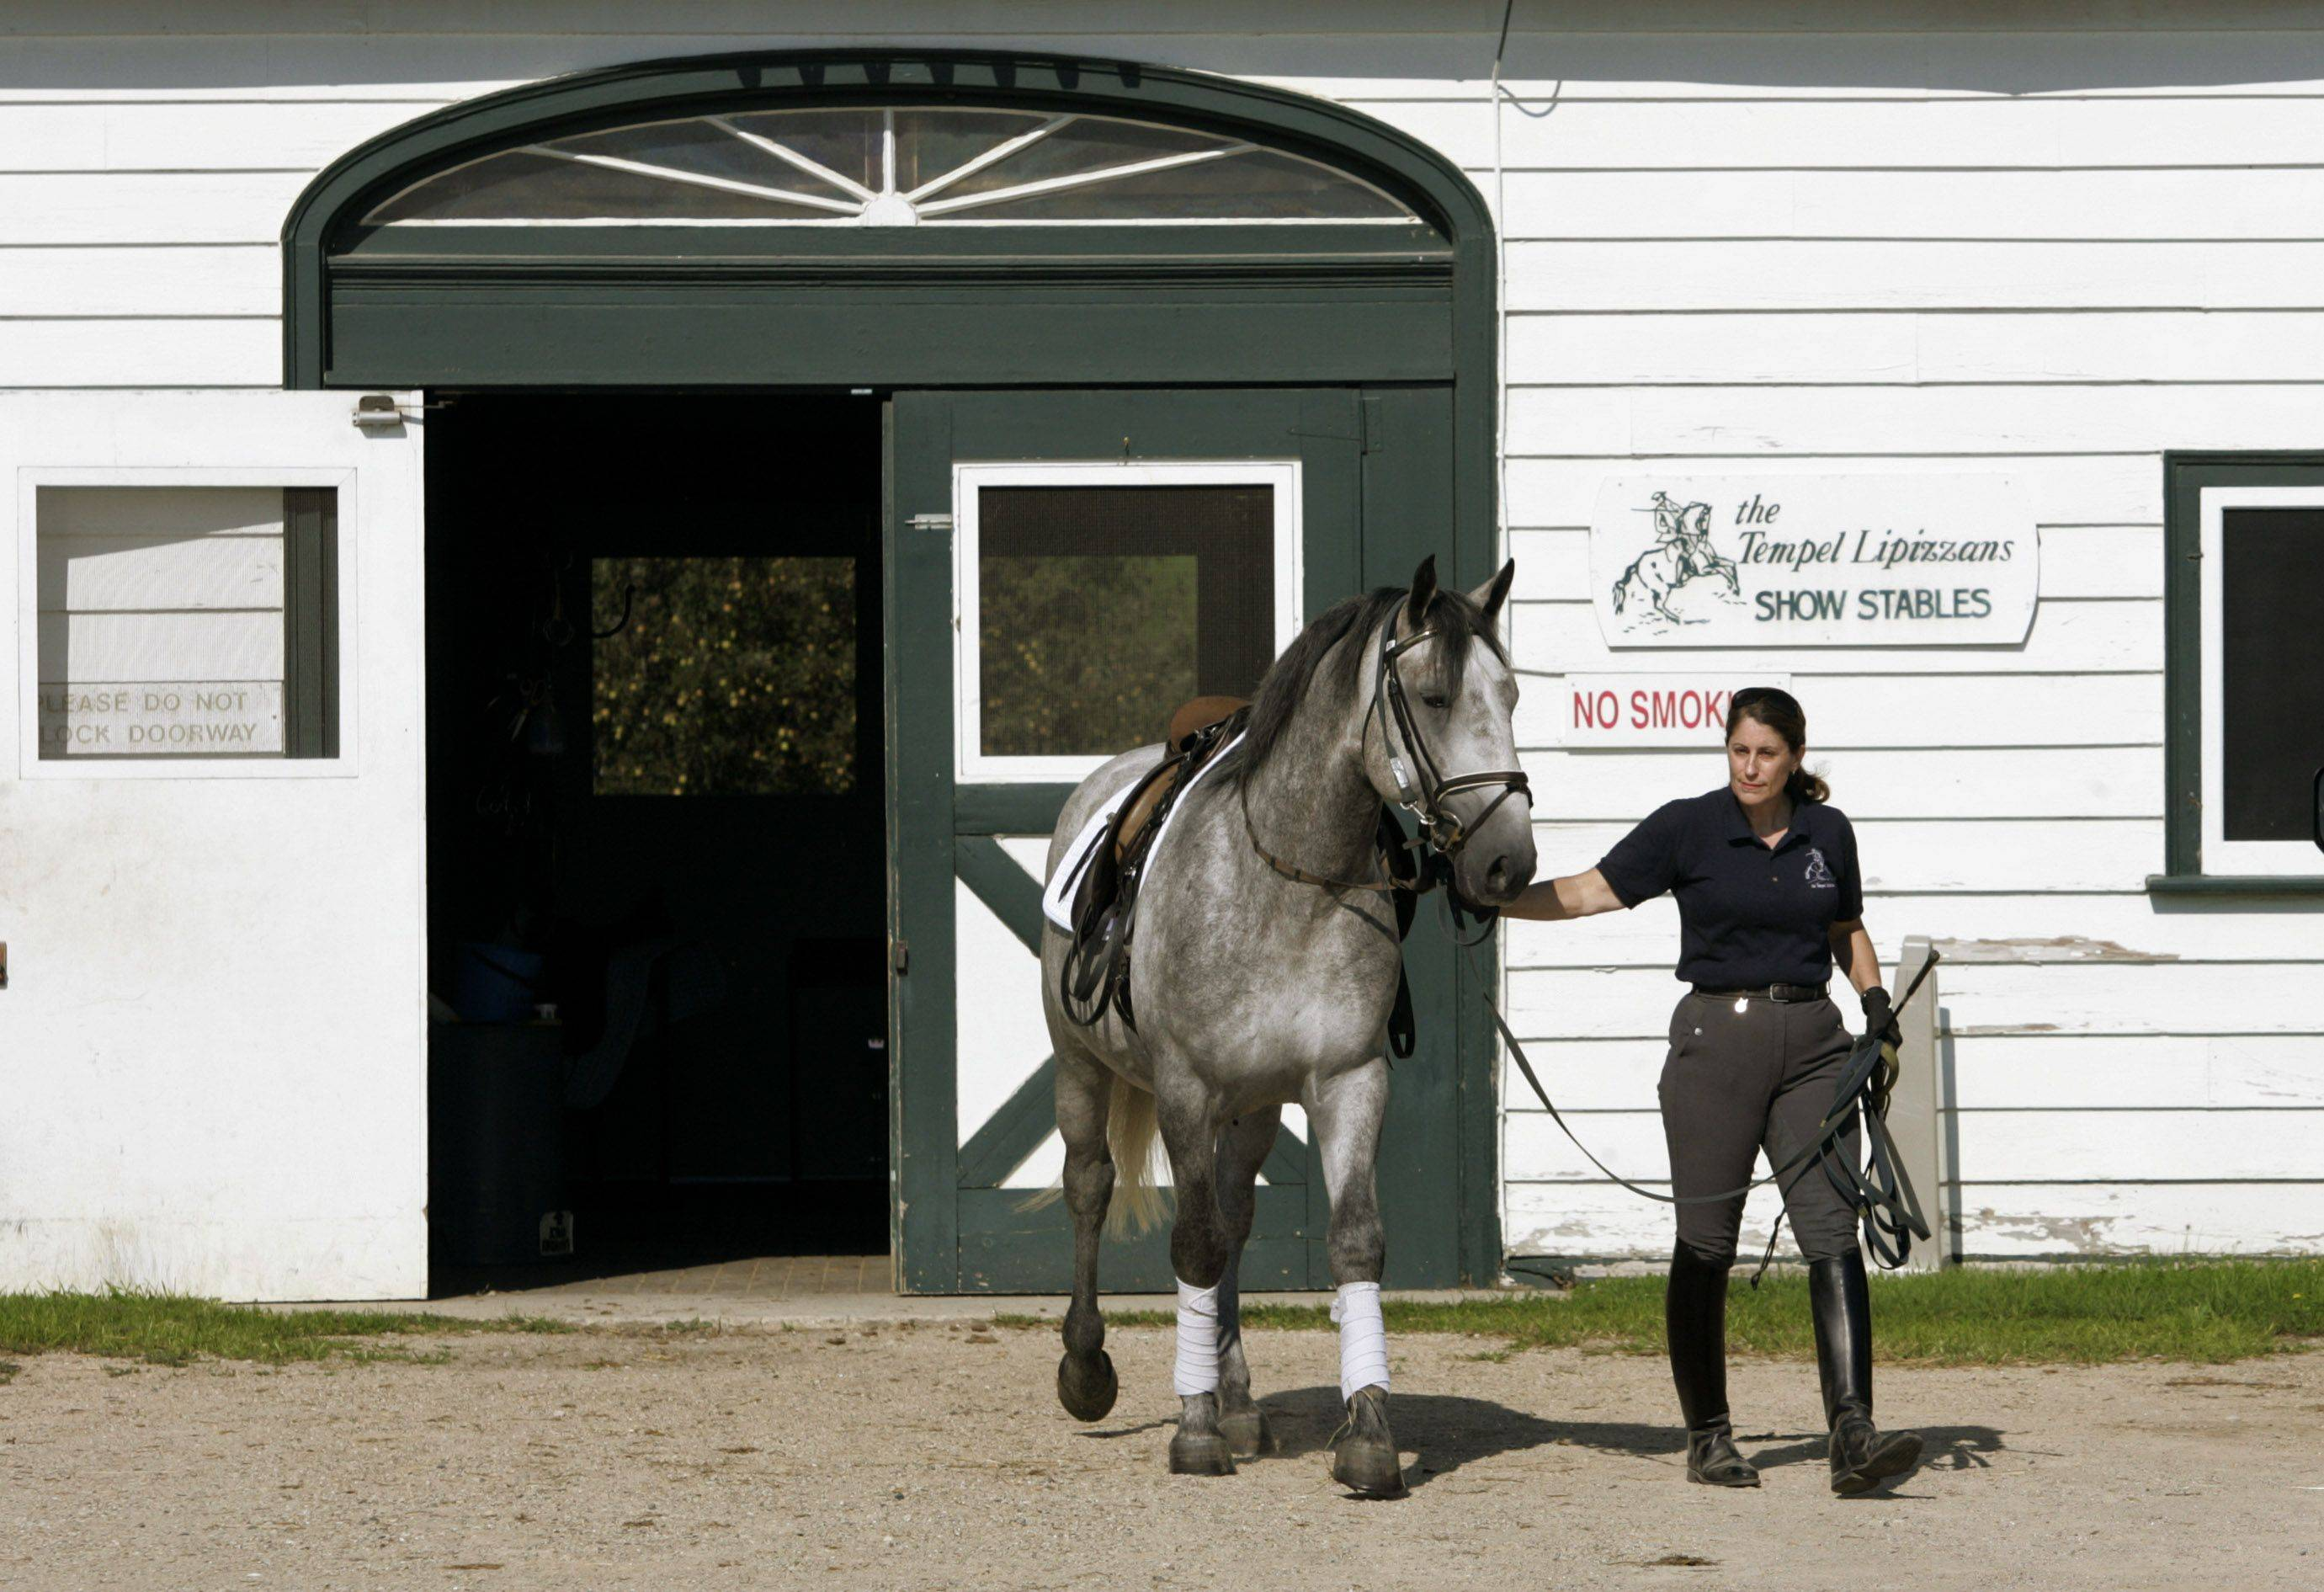 Dressage trainer Eliza Ardizzone walks out with four-year-old Favory VII Anita out of the show stable.